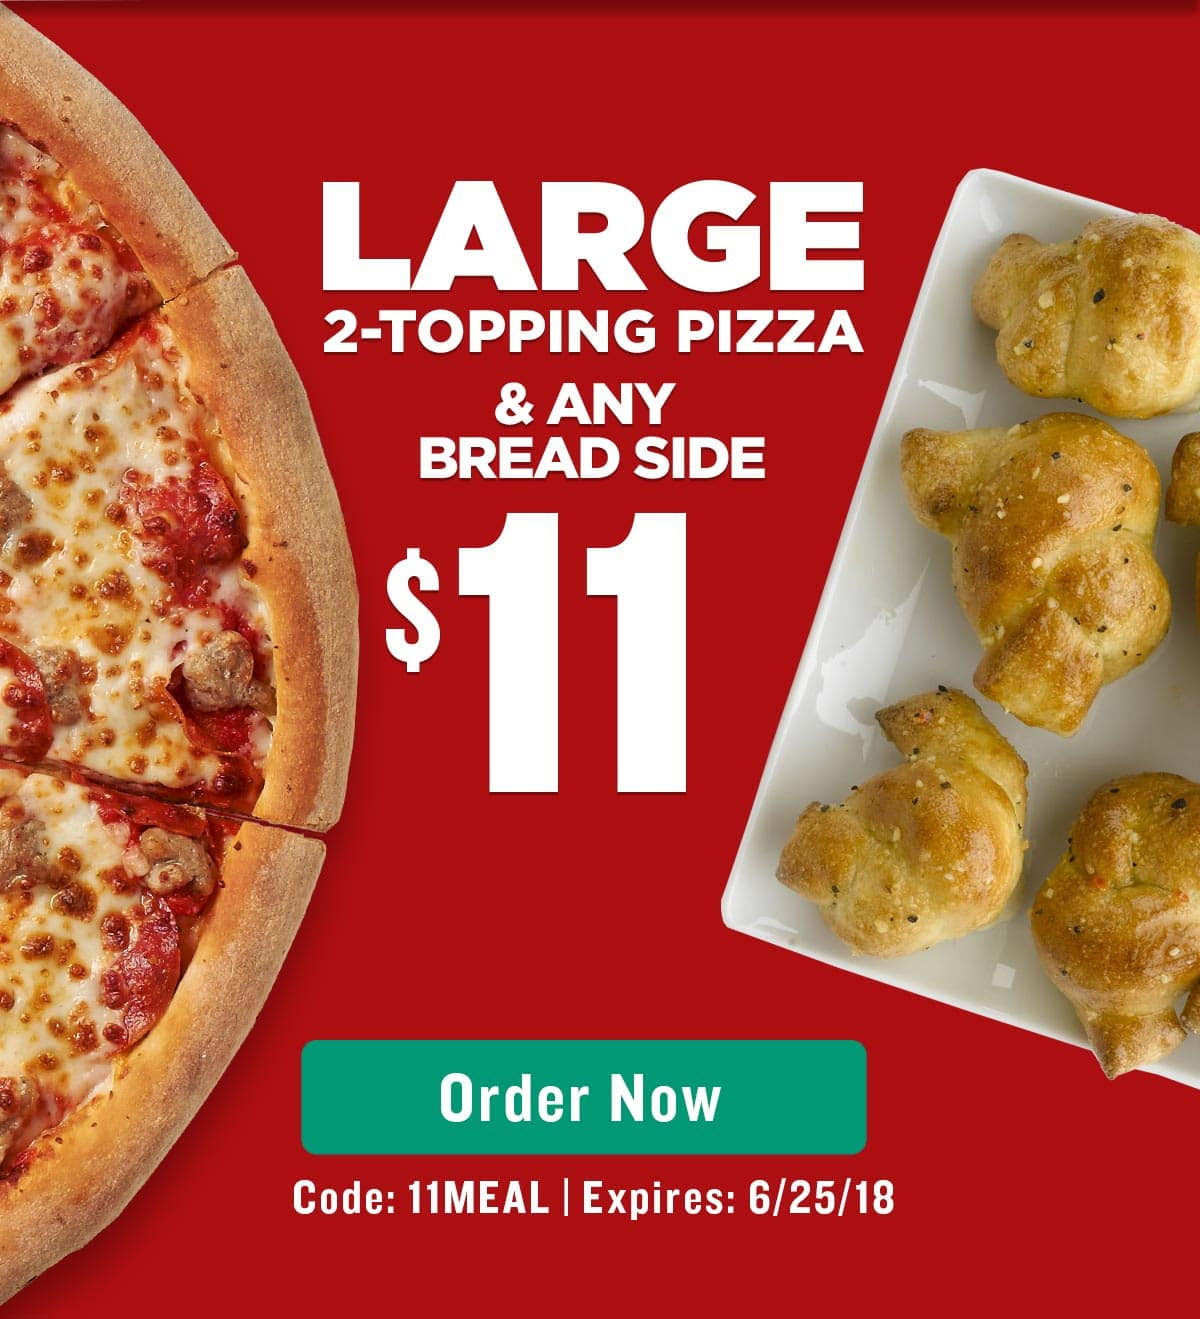 Papa Johns: Get a Large 2-Topping Pizza and any bread side $11, using promo code: 11MEAL